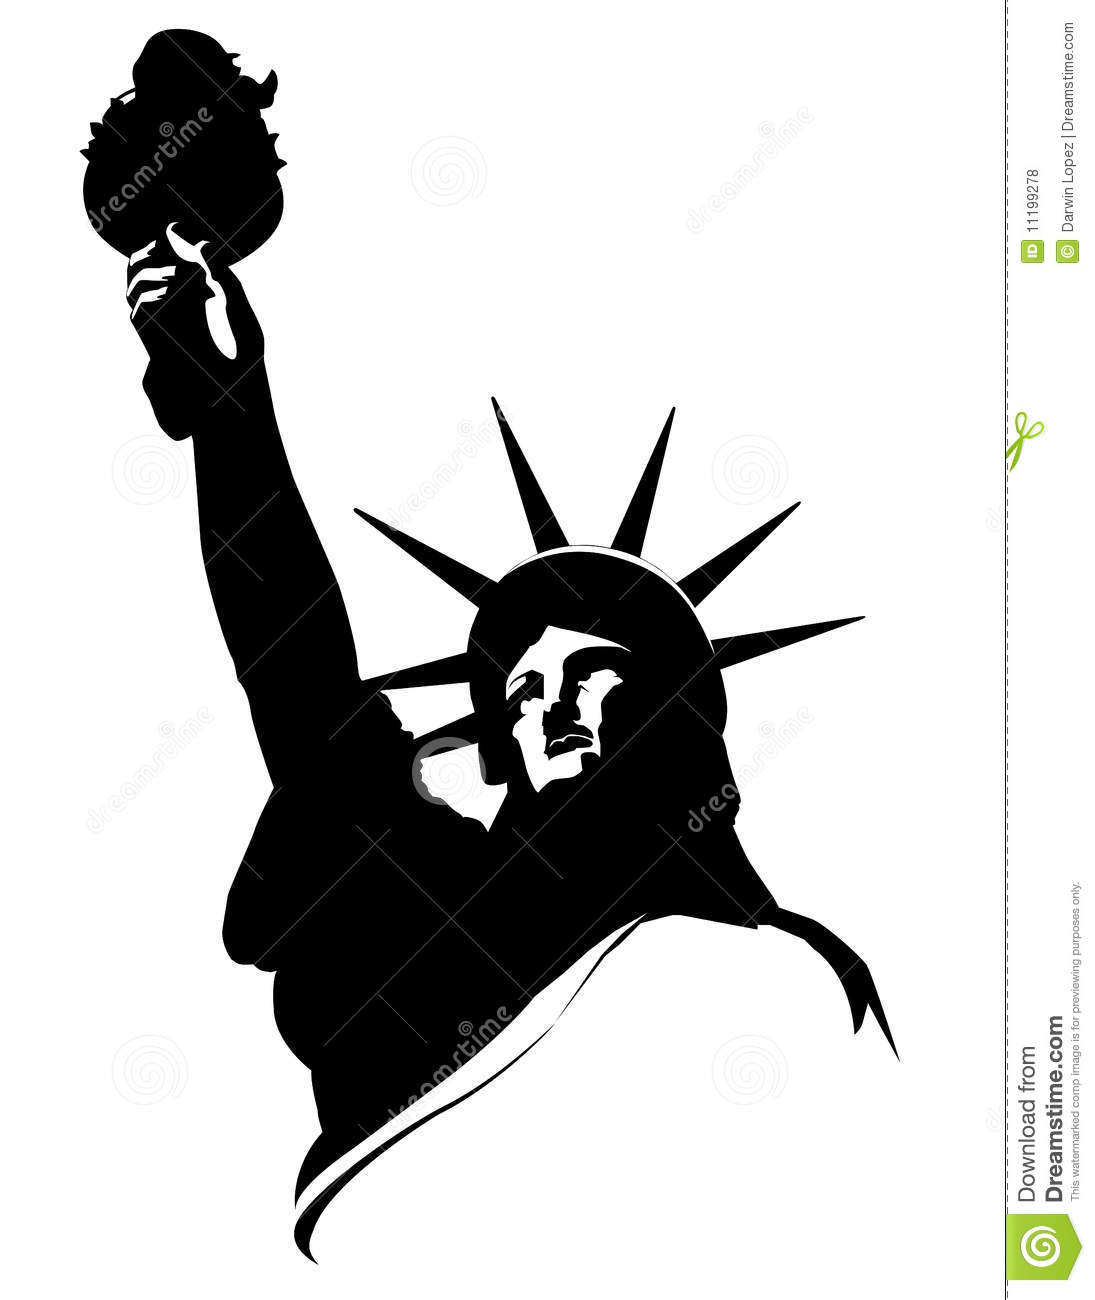 1095x1300 Clipart Statue Of Liberty Silhouette Clipground At Silhouettes